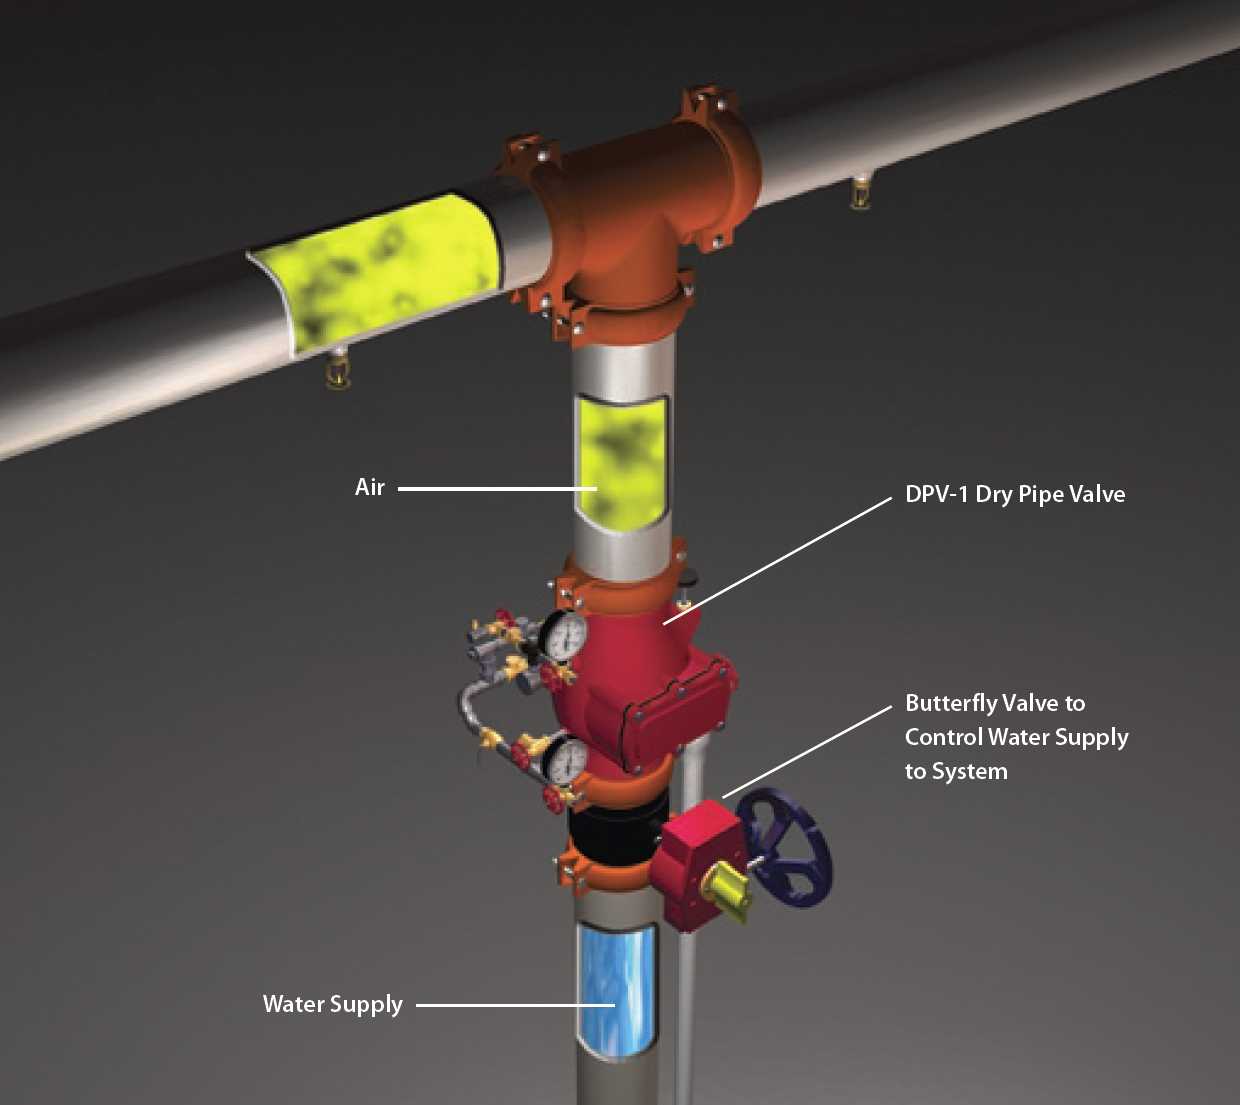 dry pipe sprinkler system riser diagram honda small engine carburetor systems fox valley fire and safety